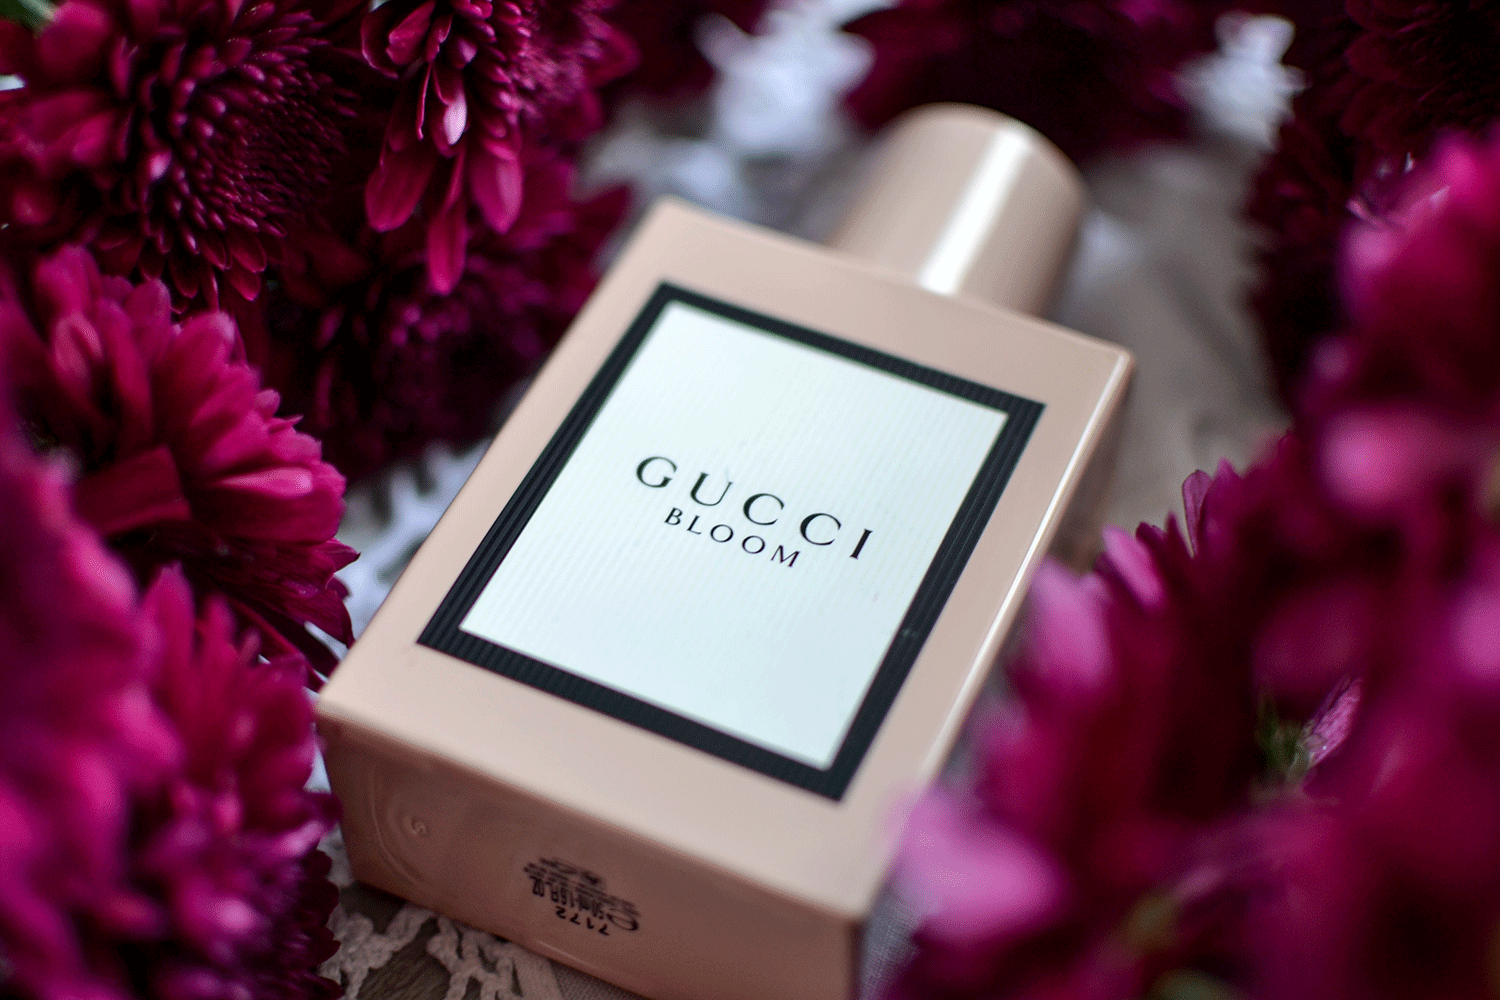 Lieblingsduft❤️ #parfum #favorite #beauty #gucci